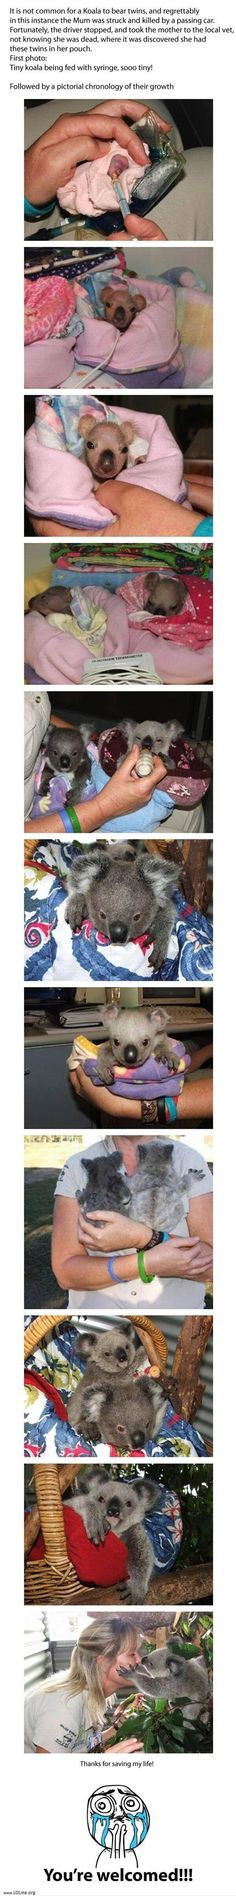 The mother koala was killed by a car, but the driver stopped and took her in to the vet who discovered twin babies - rare - in her pouch that could be saved!